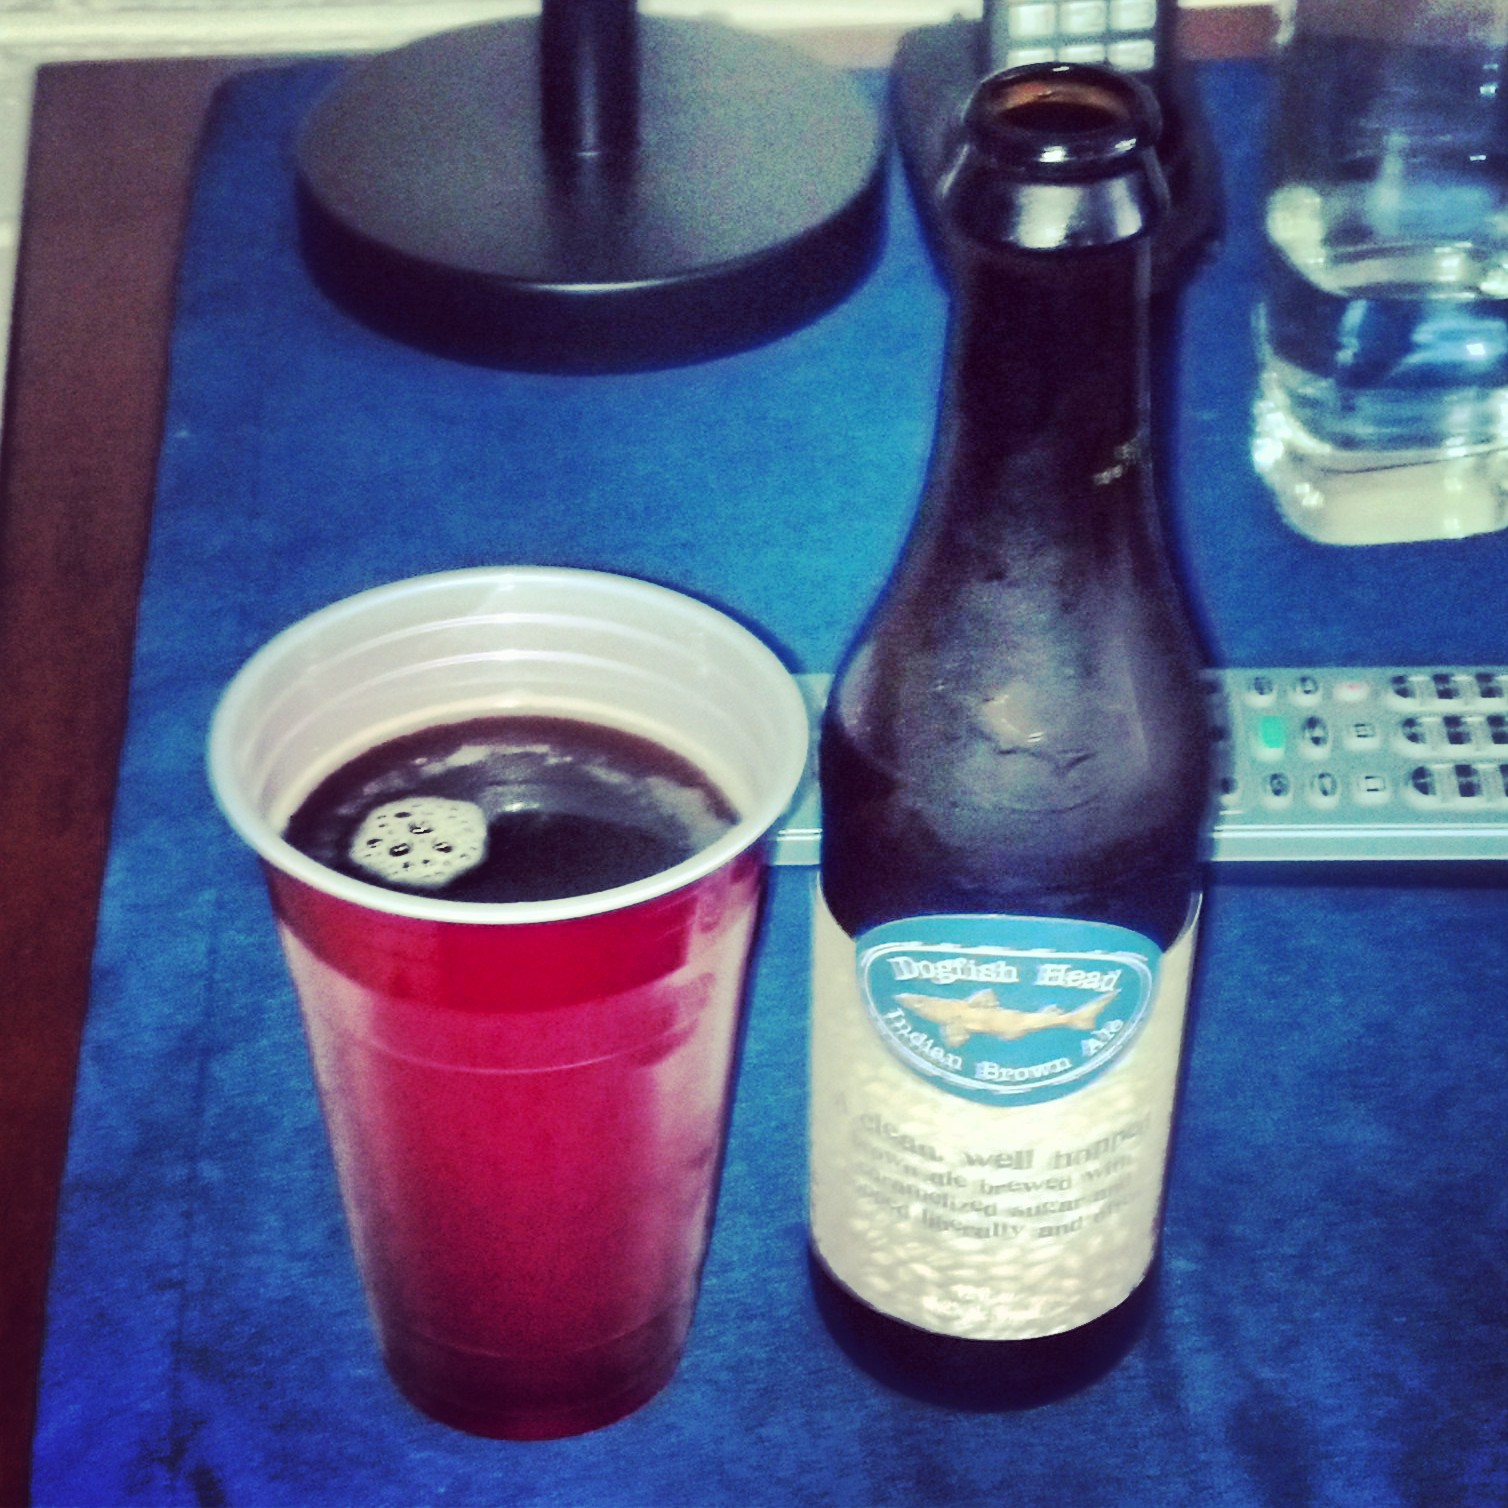 Dogfish Head India Brown Ale